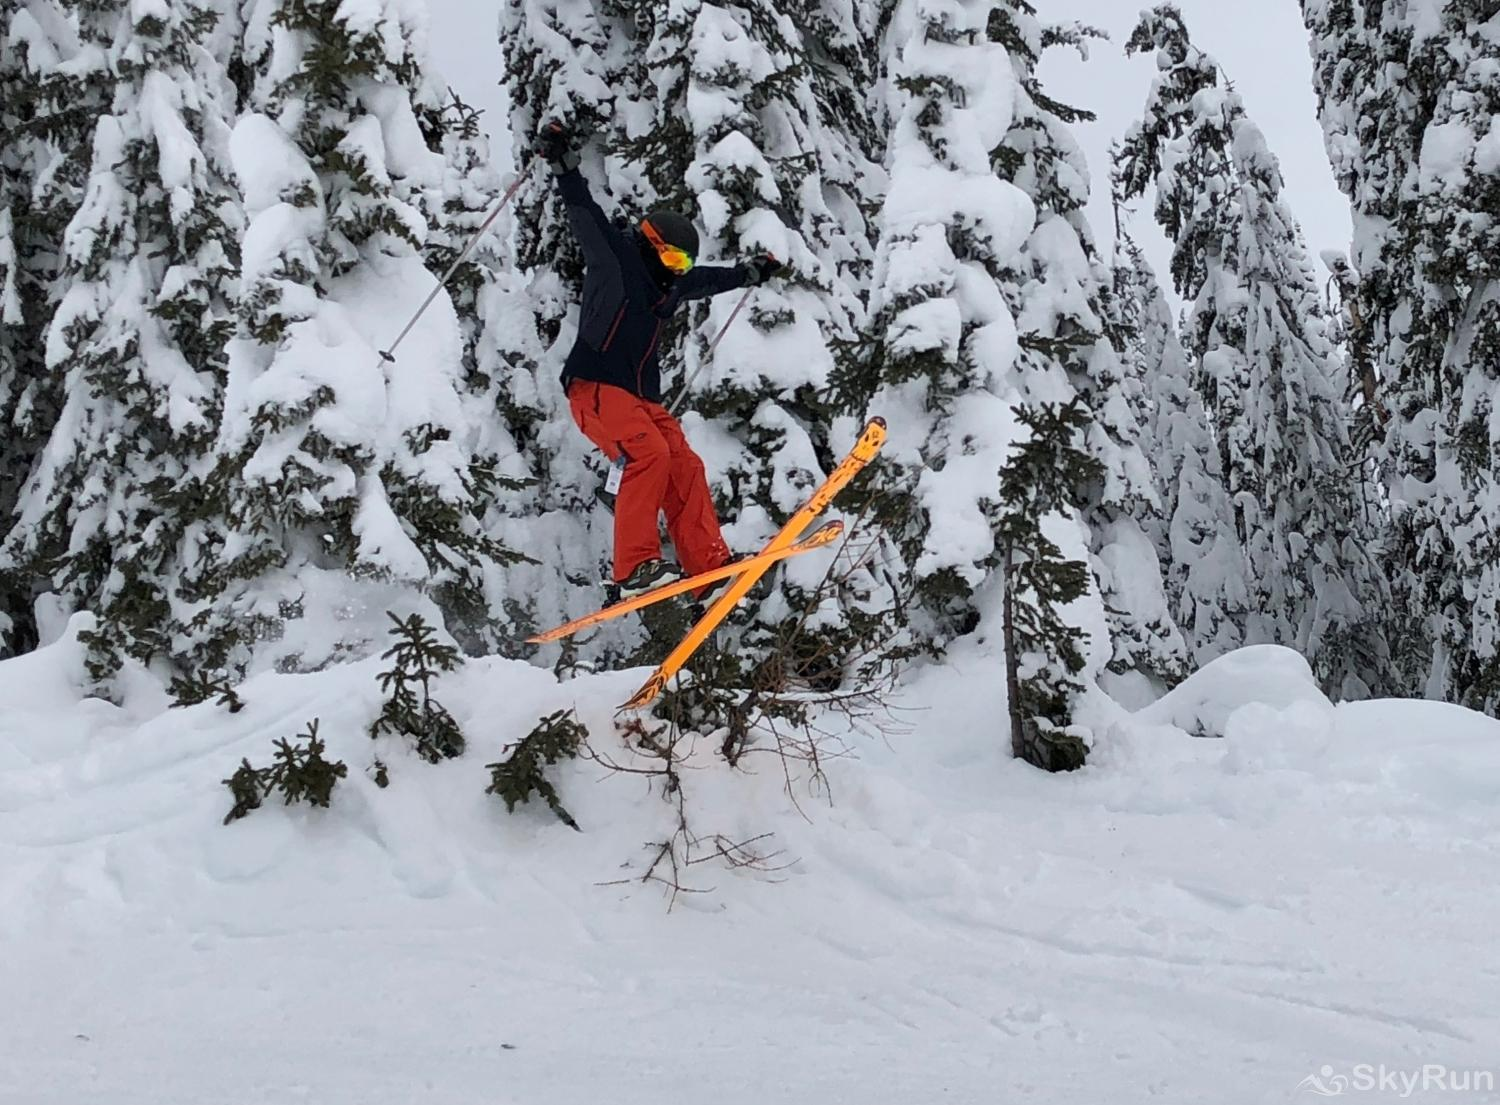 Highland Huckleberry Lodge Did you know Whitefish Mountain Resort gets over 300 inches of average annual snowfall?